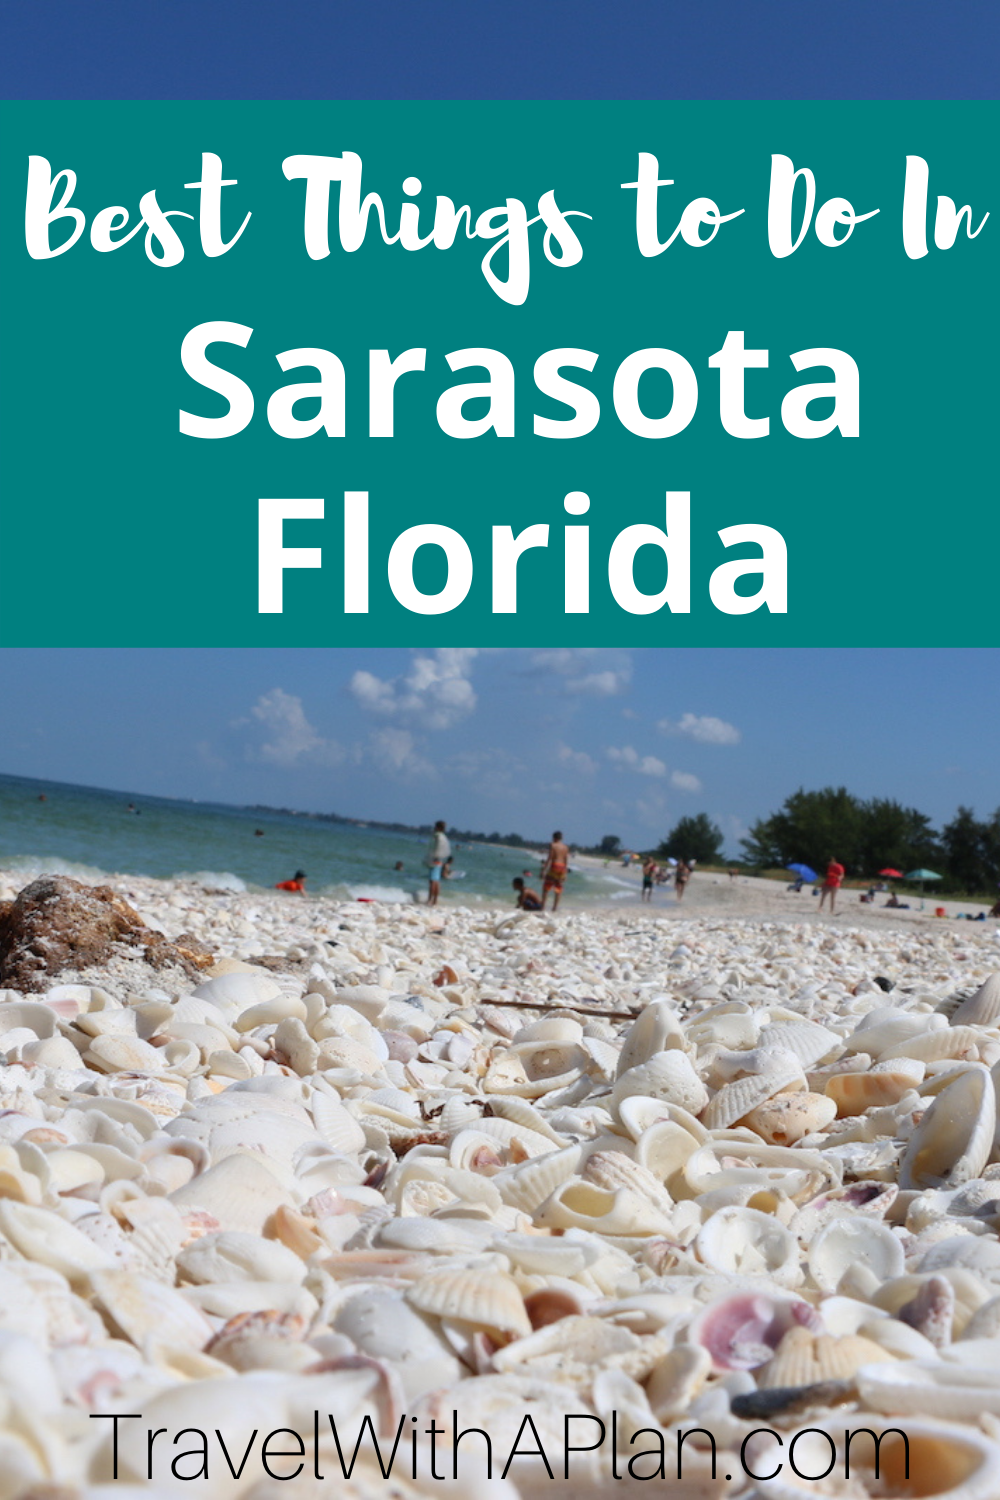 Click here for our comprehensive list of the best things to do with kids in Sarasota while on vacation!  We cover the best beaches, aquariums, shopping malls, and museums.  Let the vacation planning begin!  #Sarasota #Florida #Sarasotabeaches #thingstodoinSarasota #familyvacationideas #familytravel